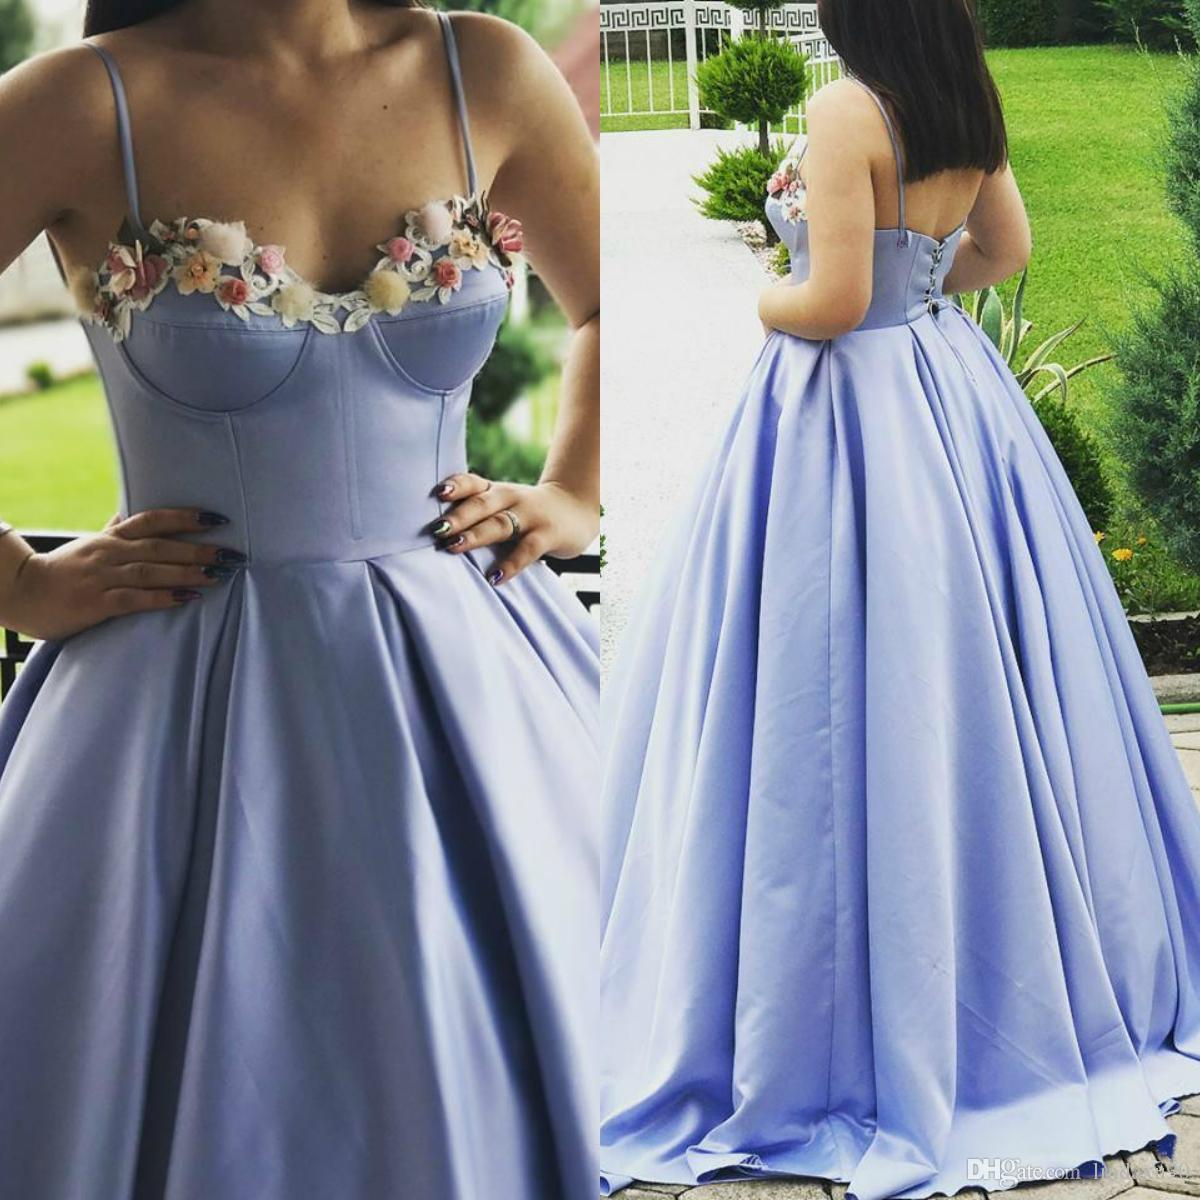 Sexy Lavender Evening Dresses Spaghetti Straps Handmade Flower Applique Long Party Dress Pleated Floral Appliques Evening Gowns Custom